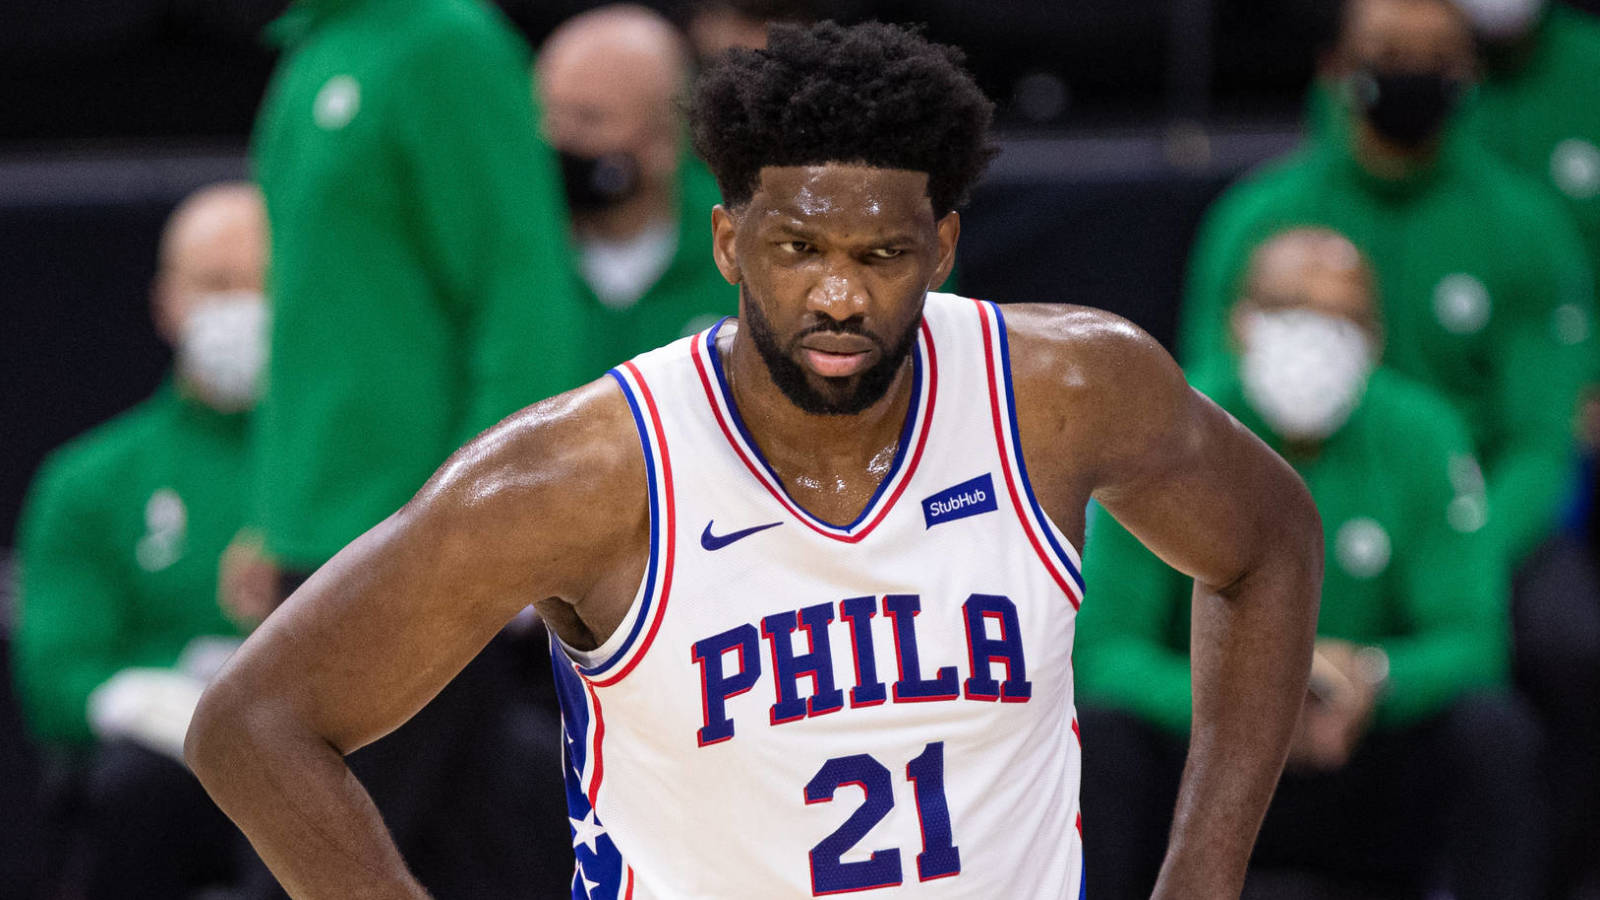 Joel Embiid hits back at Marcus Smart for accusing him of flopping